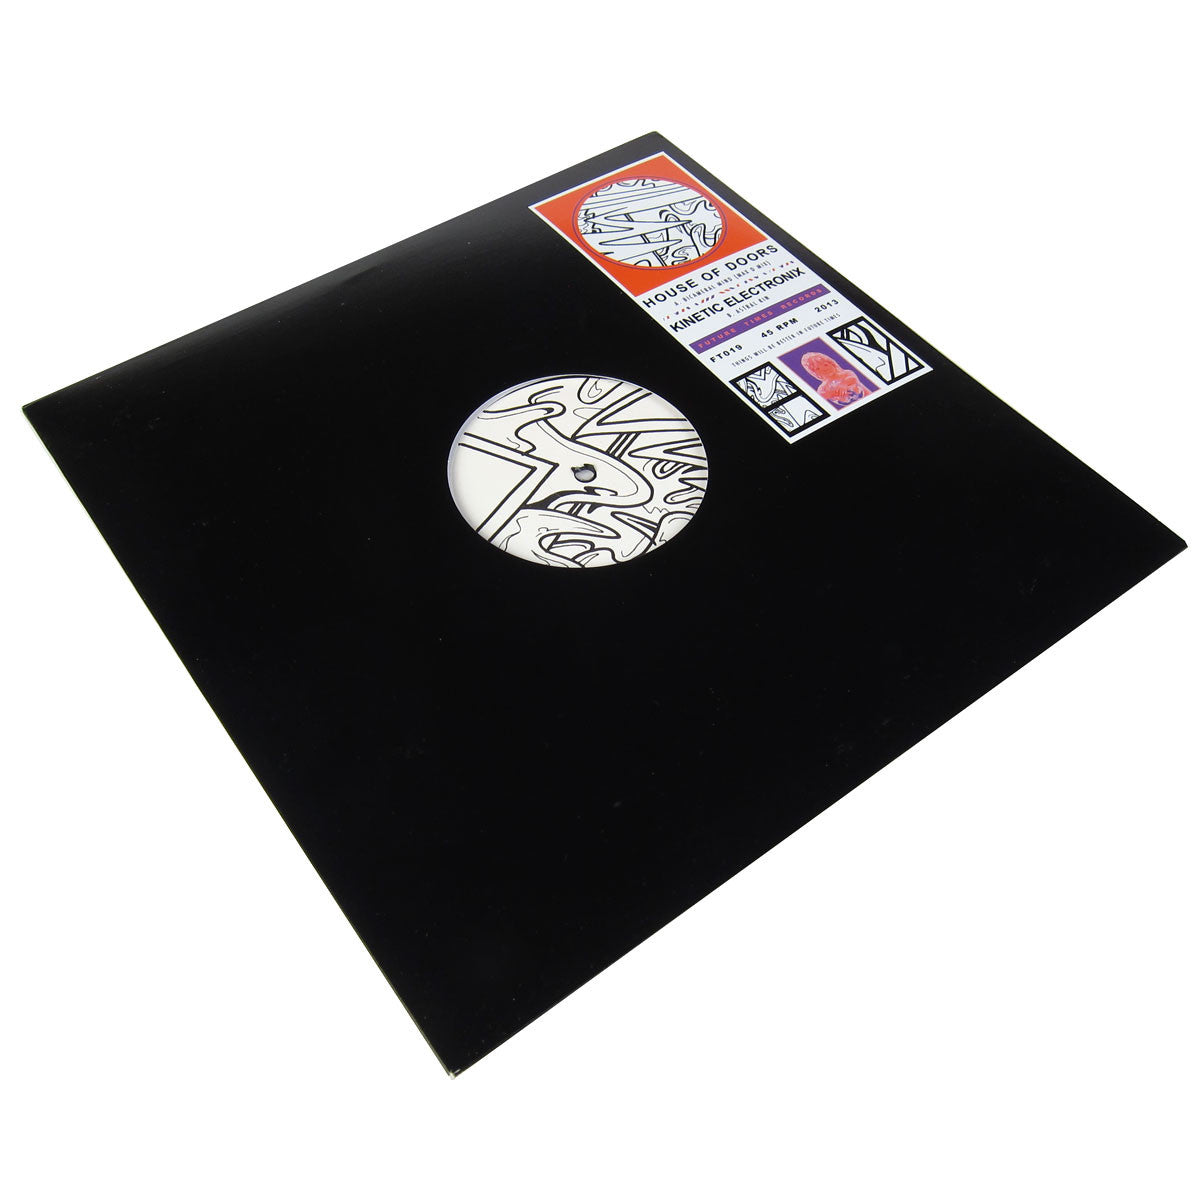 House Of Doors / Kinetic Electronix: Bicameral Mind (Max D Mix) / Astral Kin Vinyl 12""